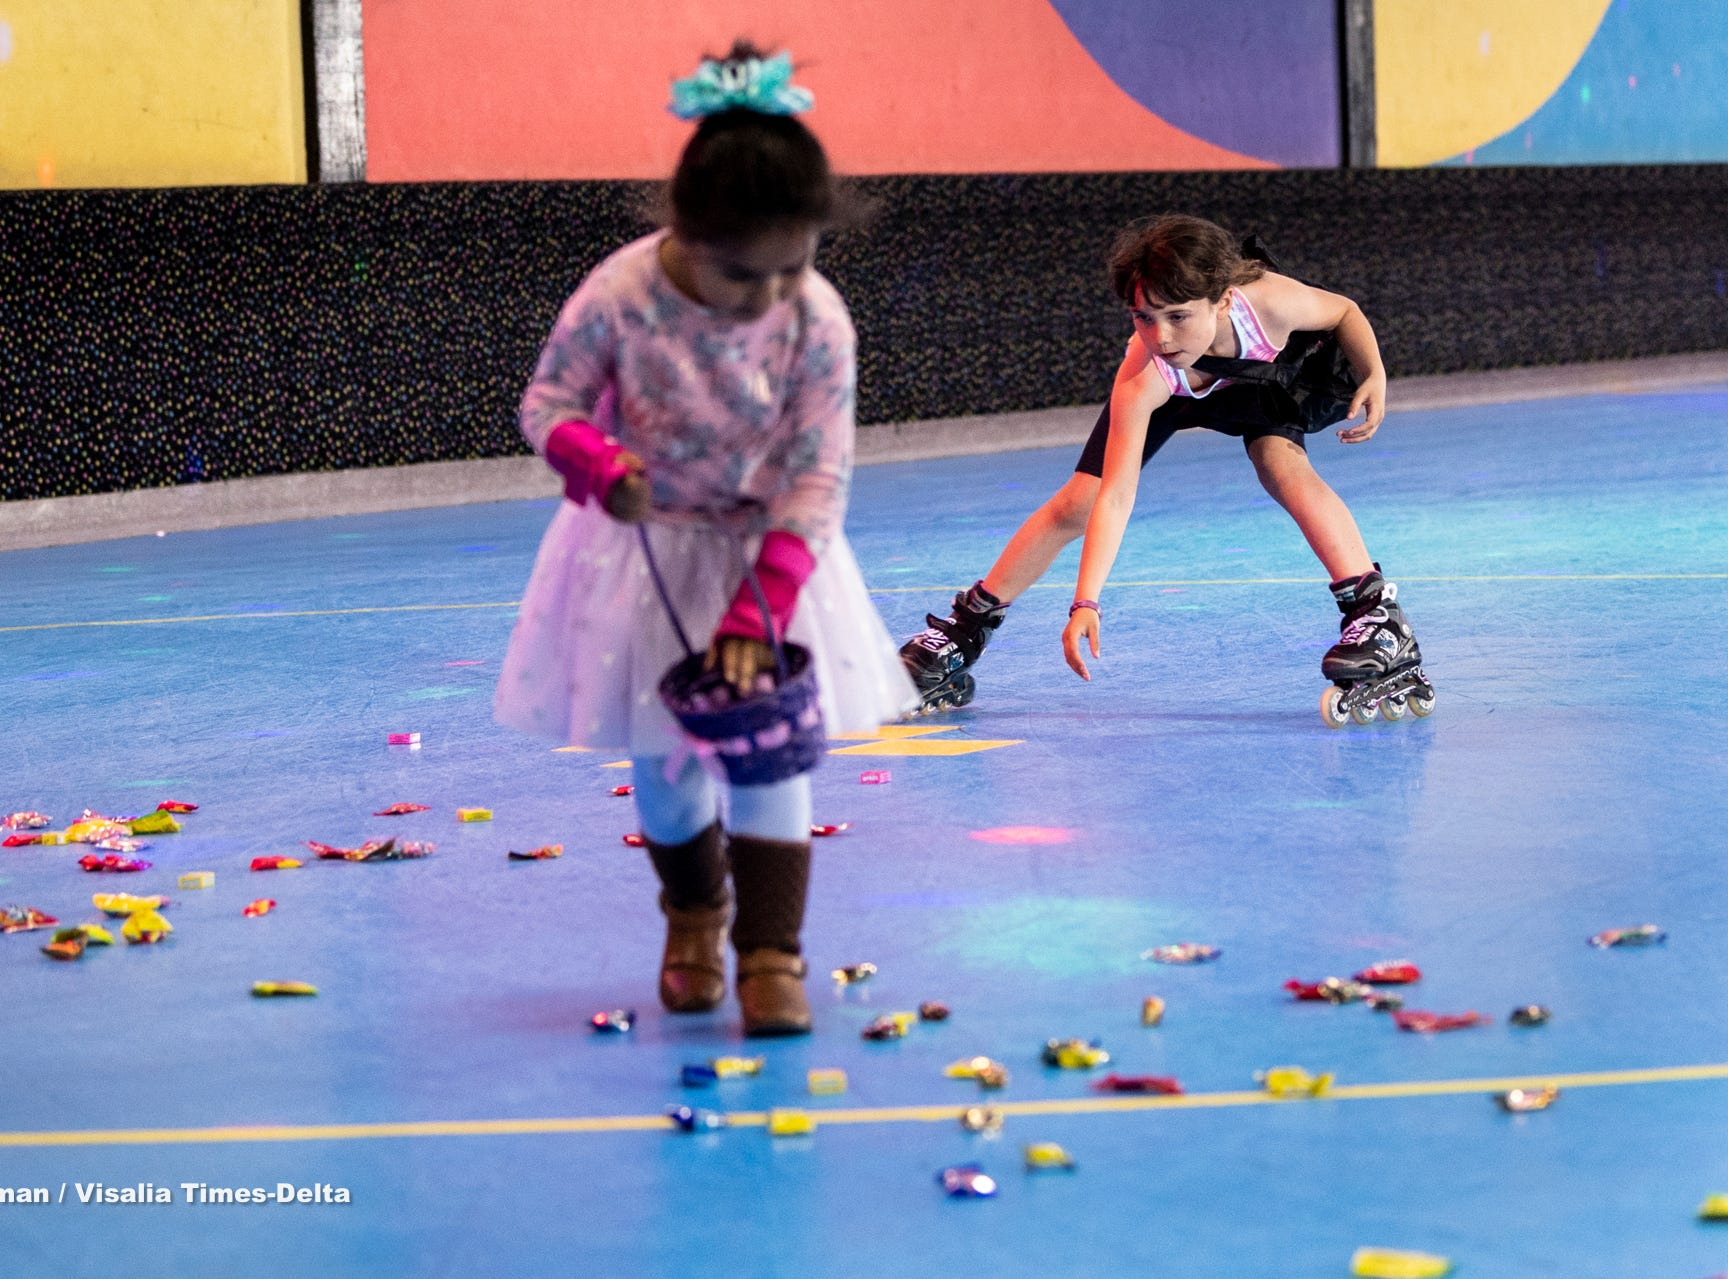 Avery Hernandez, 7, skates in to gather candy at Roller Towne in Visalia during their pre-Easter egg hunt on Friday, April 19, 2019.